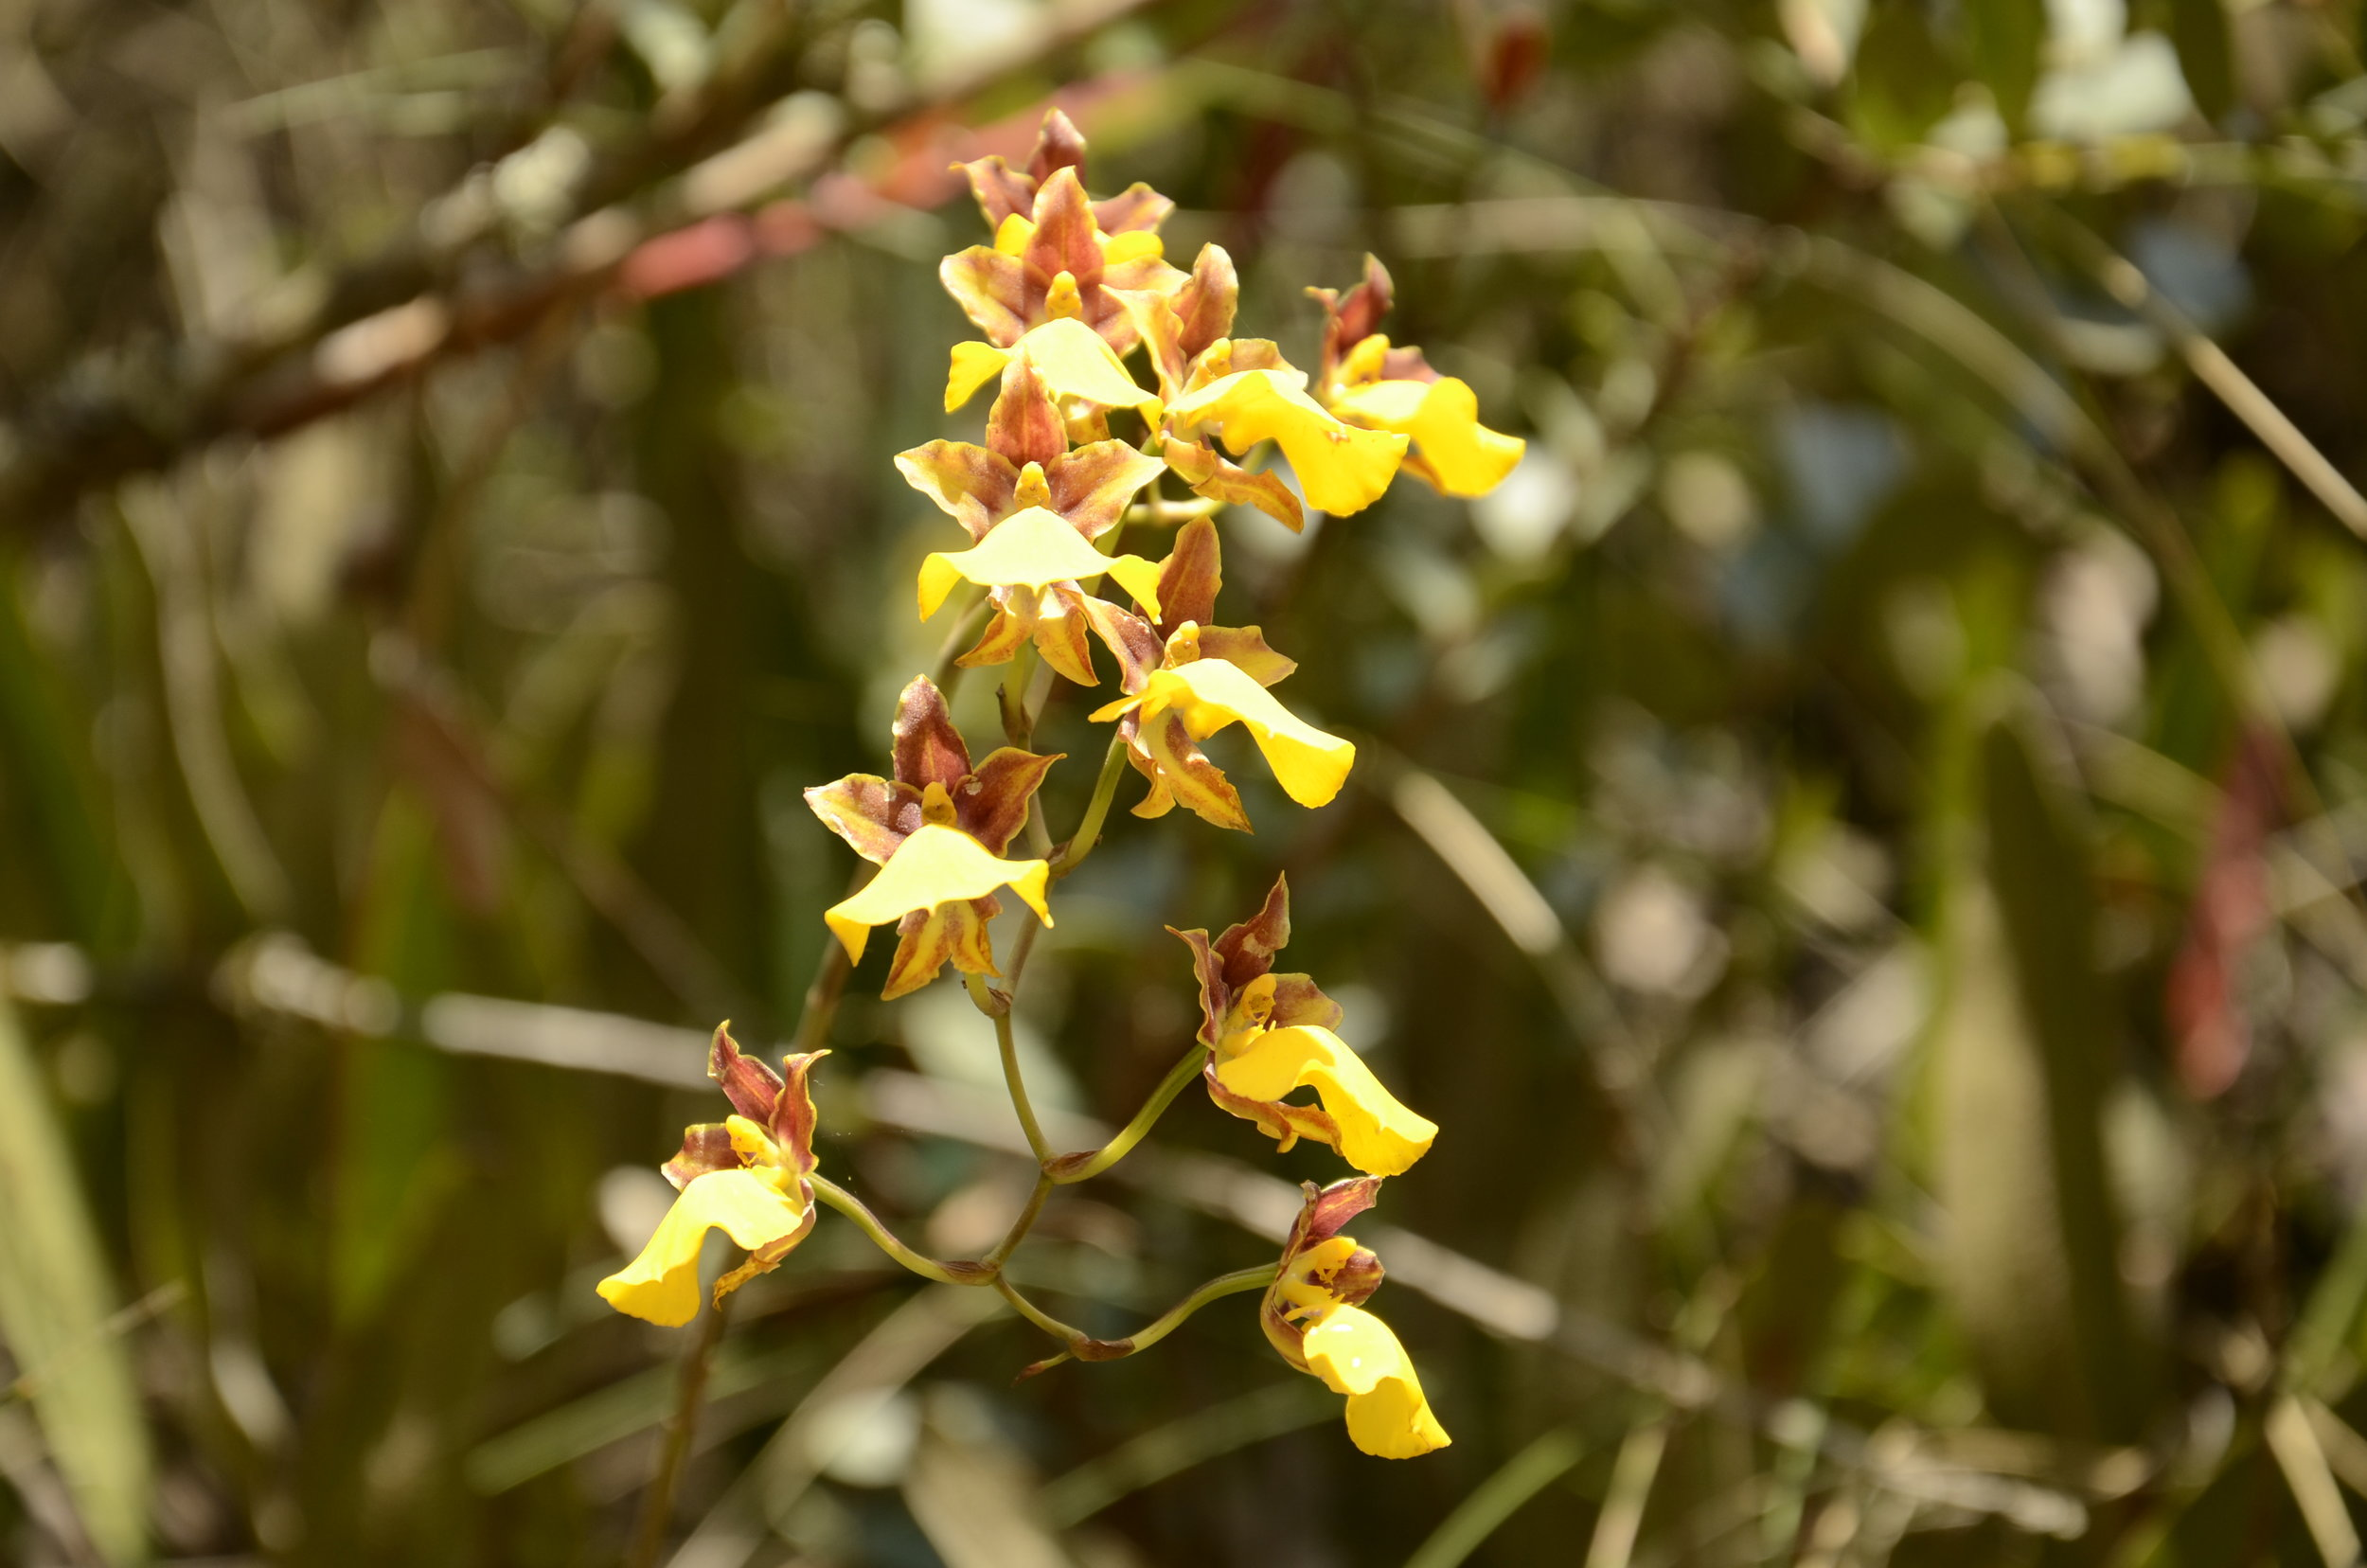 Just one species of many orchids that we saw